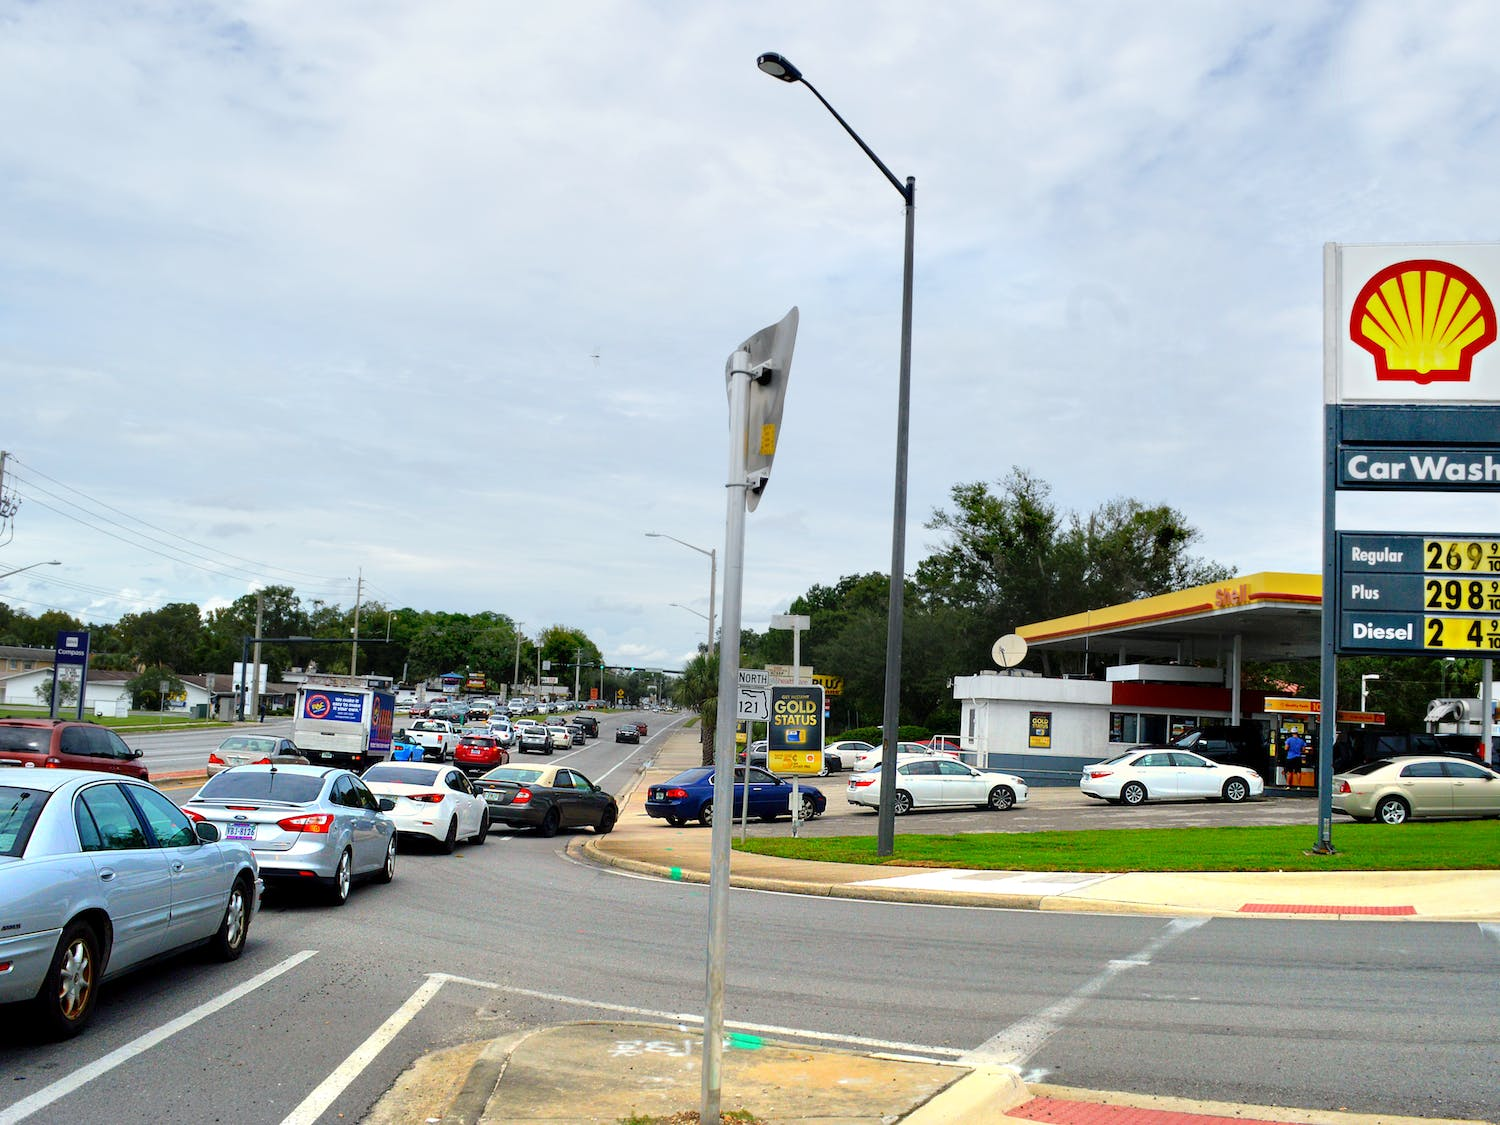 The Shell gas station on Archer Road experiences backups extending into traffic lanes as Gainesville locals attempt to fill up their tanks before experiencing the potential effects of Hurricane Irma.